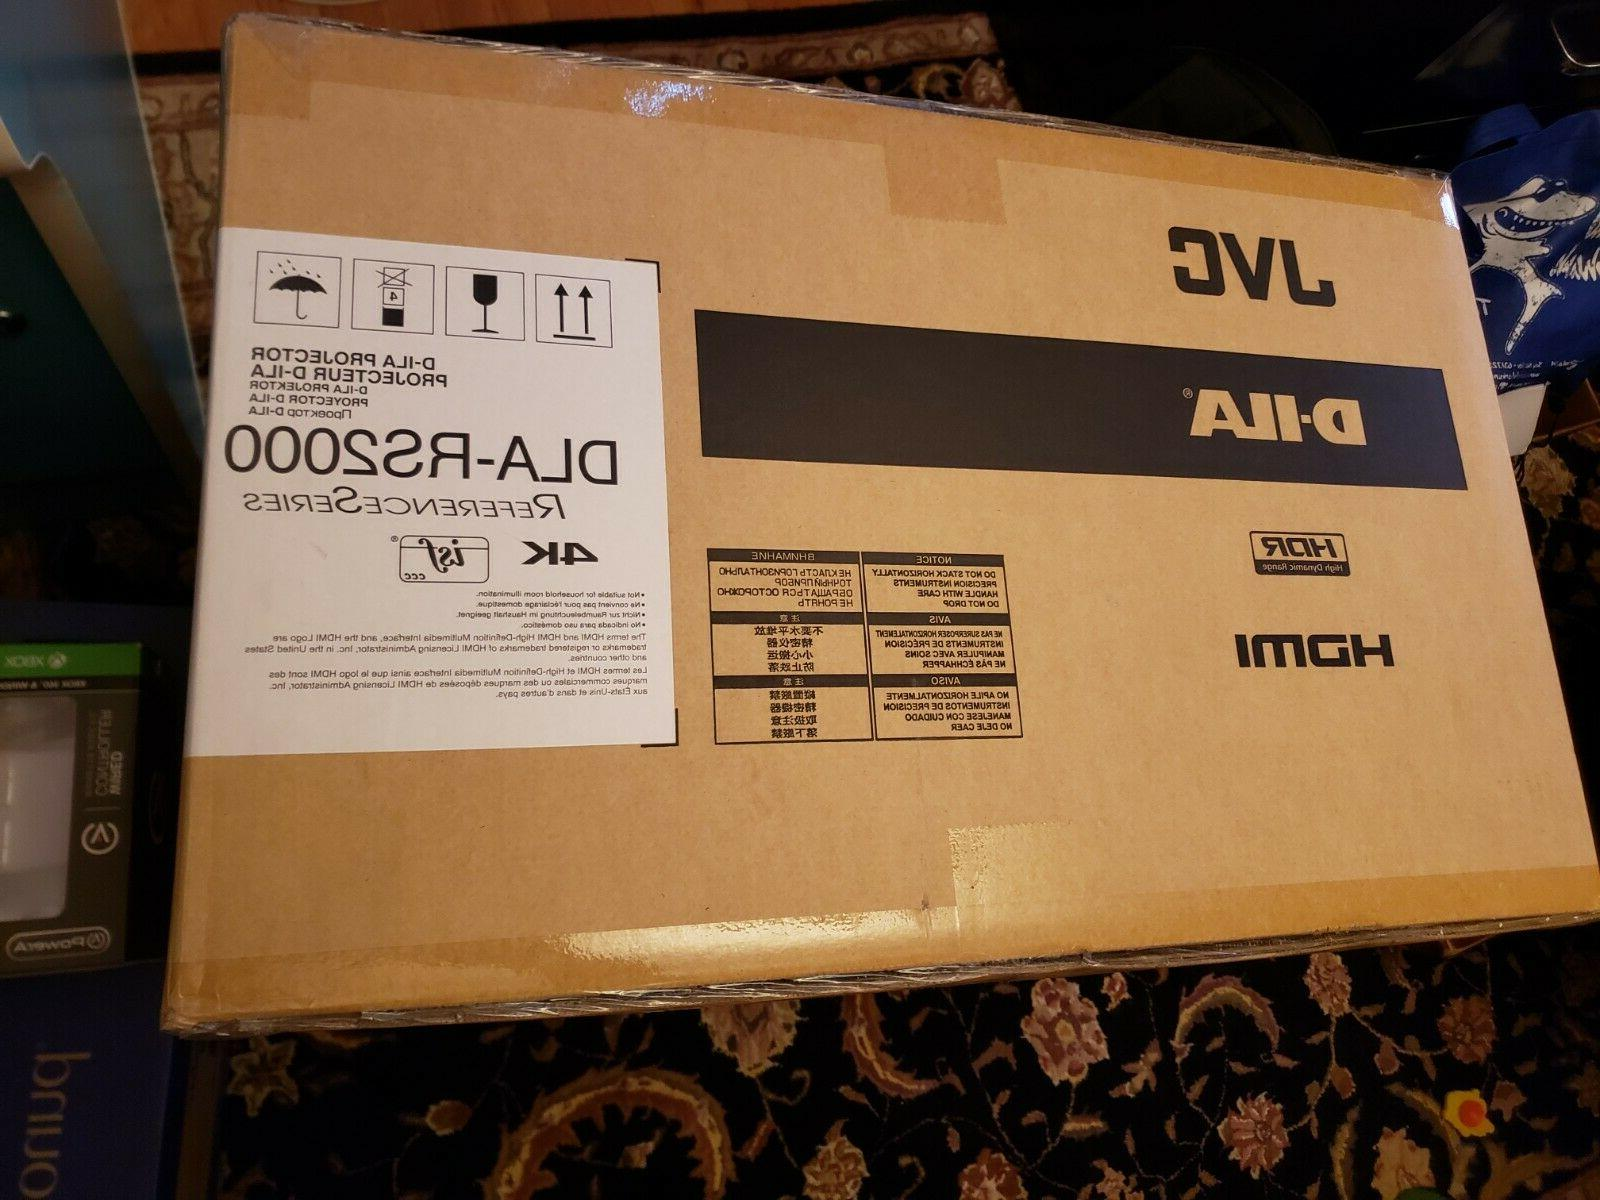 JVC Native HDR Home Projector, brand new